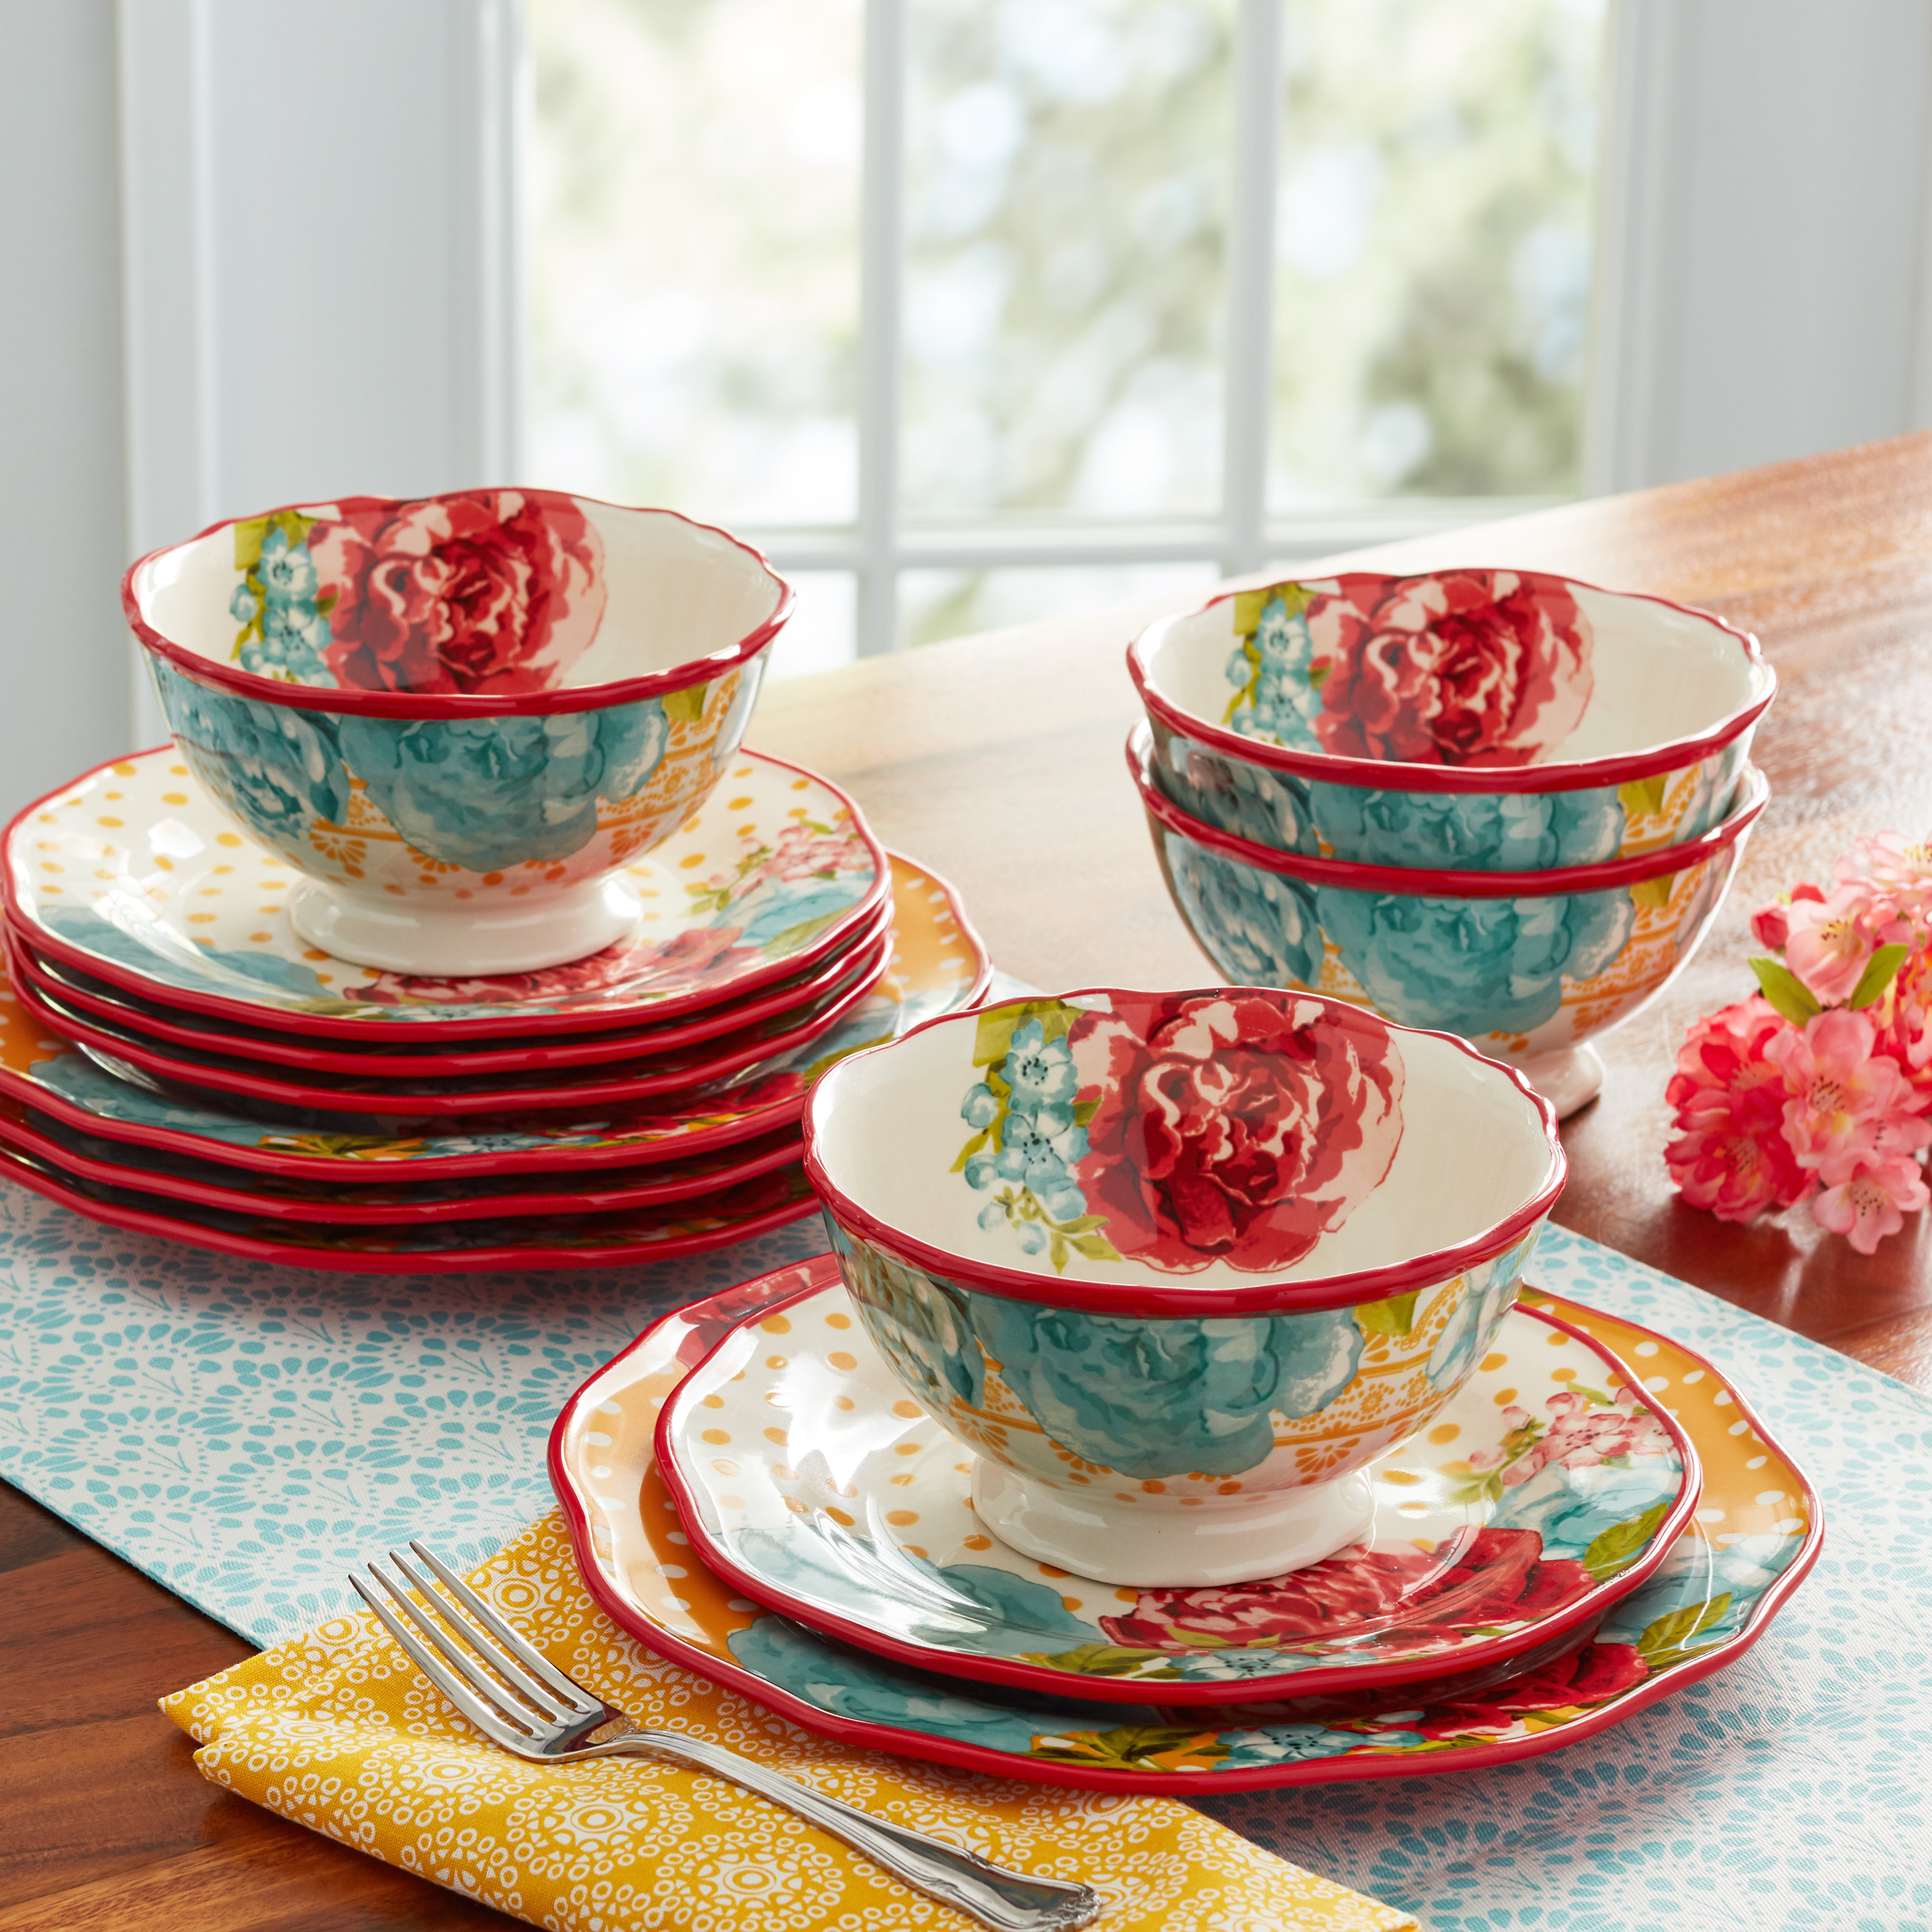 The floral dinnerware set on a table